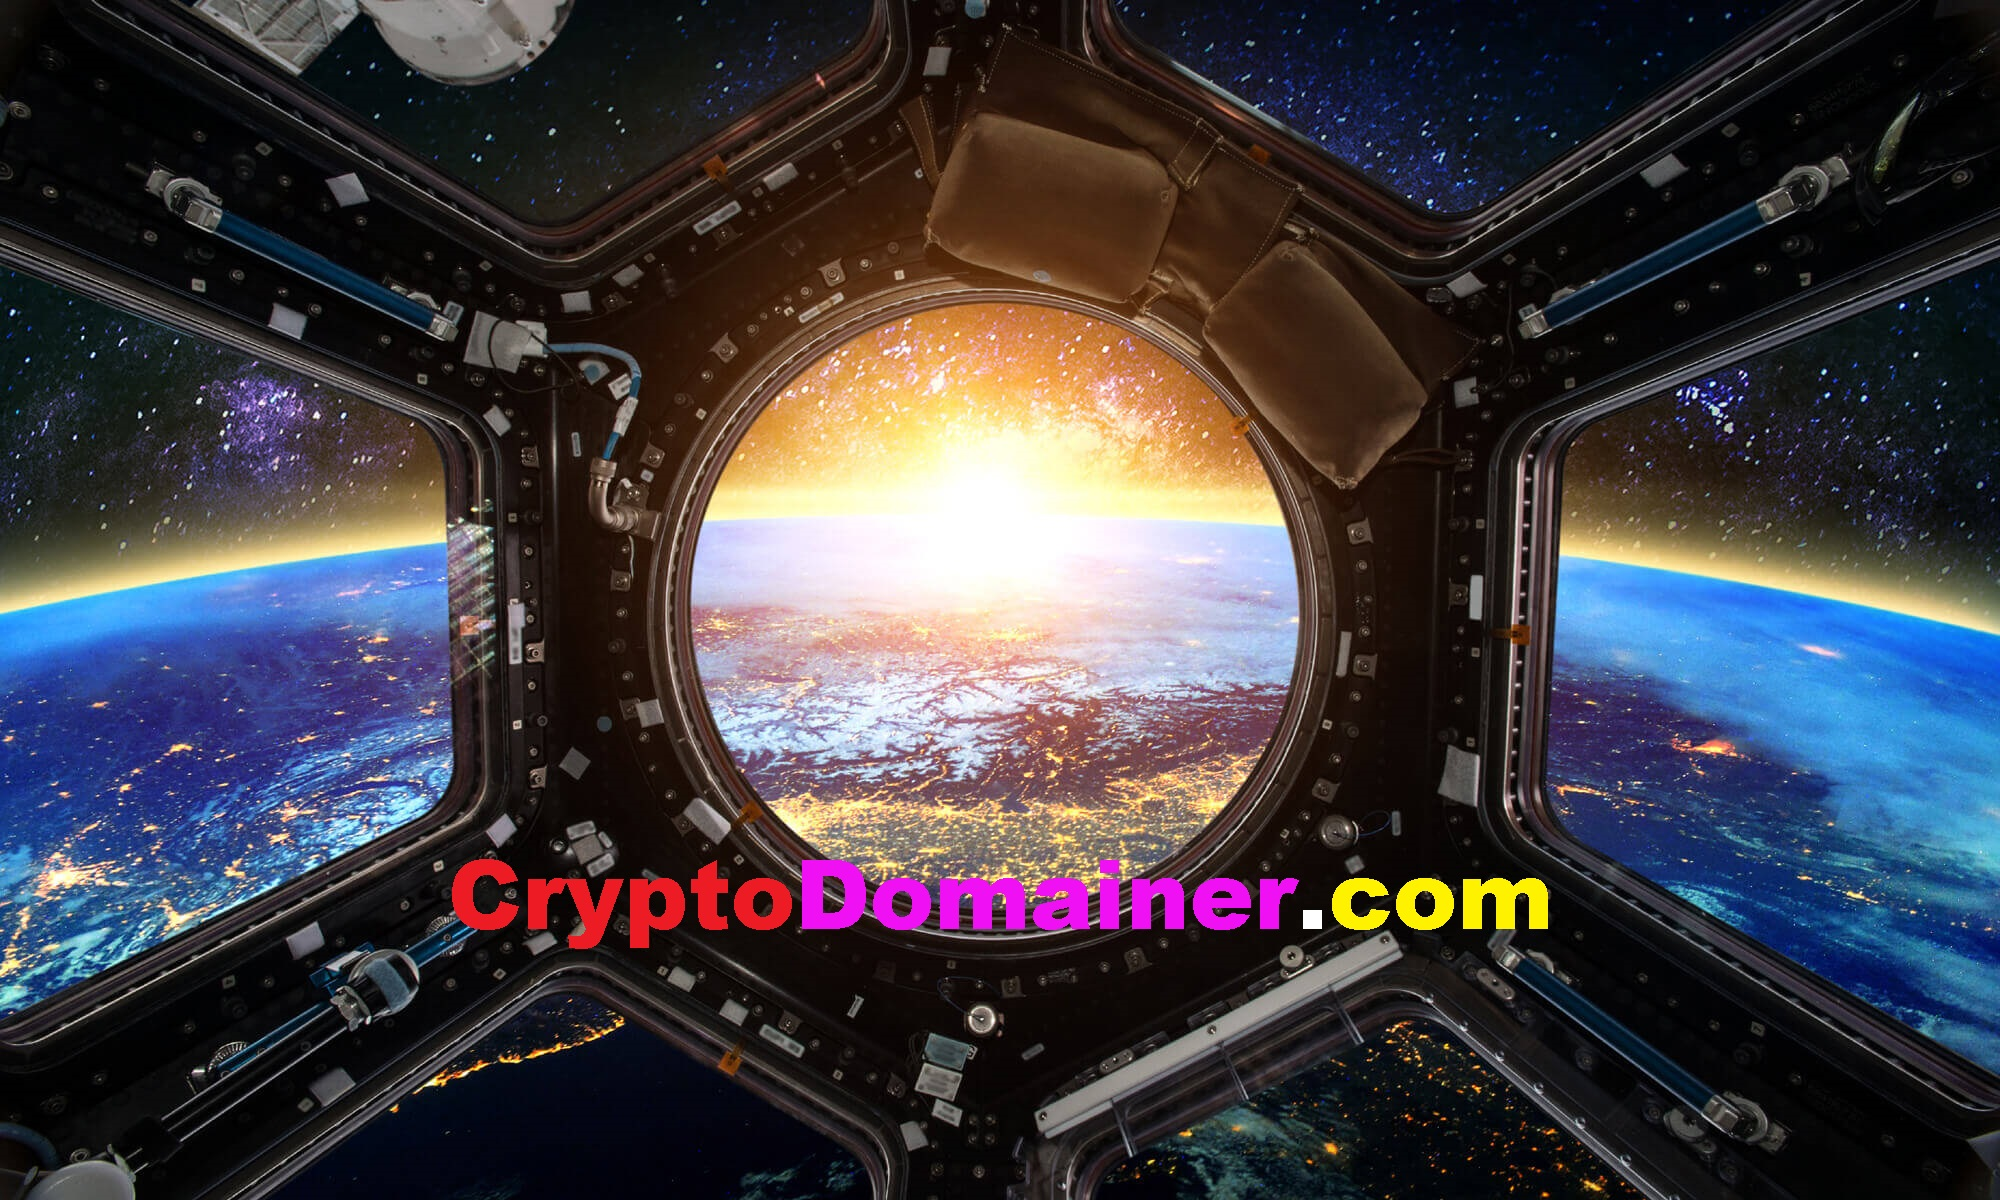 T.ME/CryptoDomainer